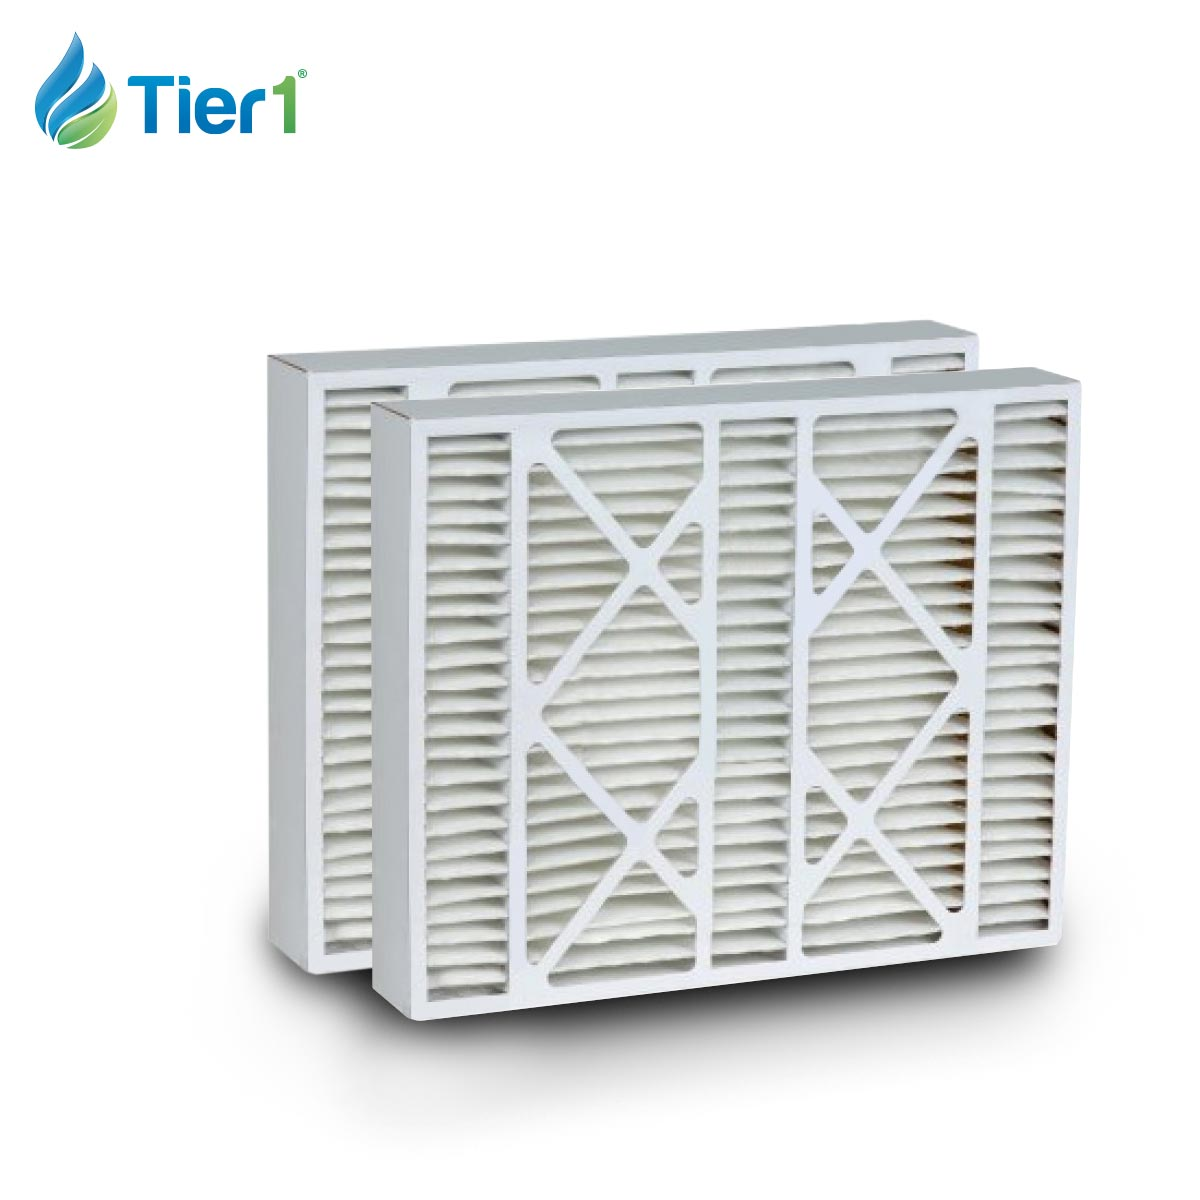 Tier1 brand replacement for Electro Air - 16 x 21 x 5 - MERV 13 (2-Pack) TIER1-DPFI16X21X5M13DEA